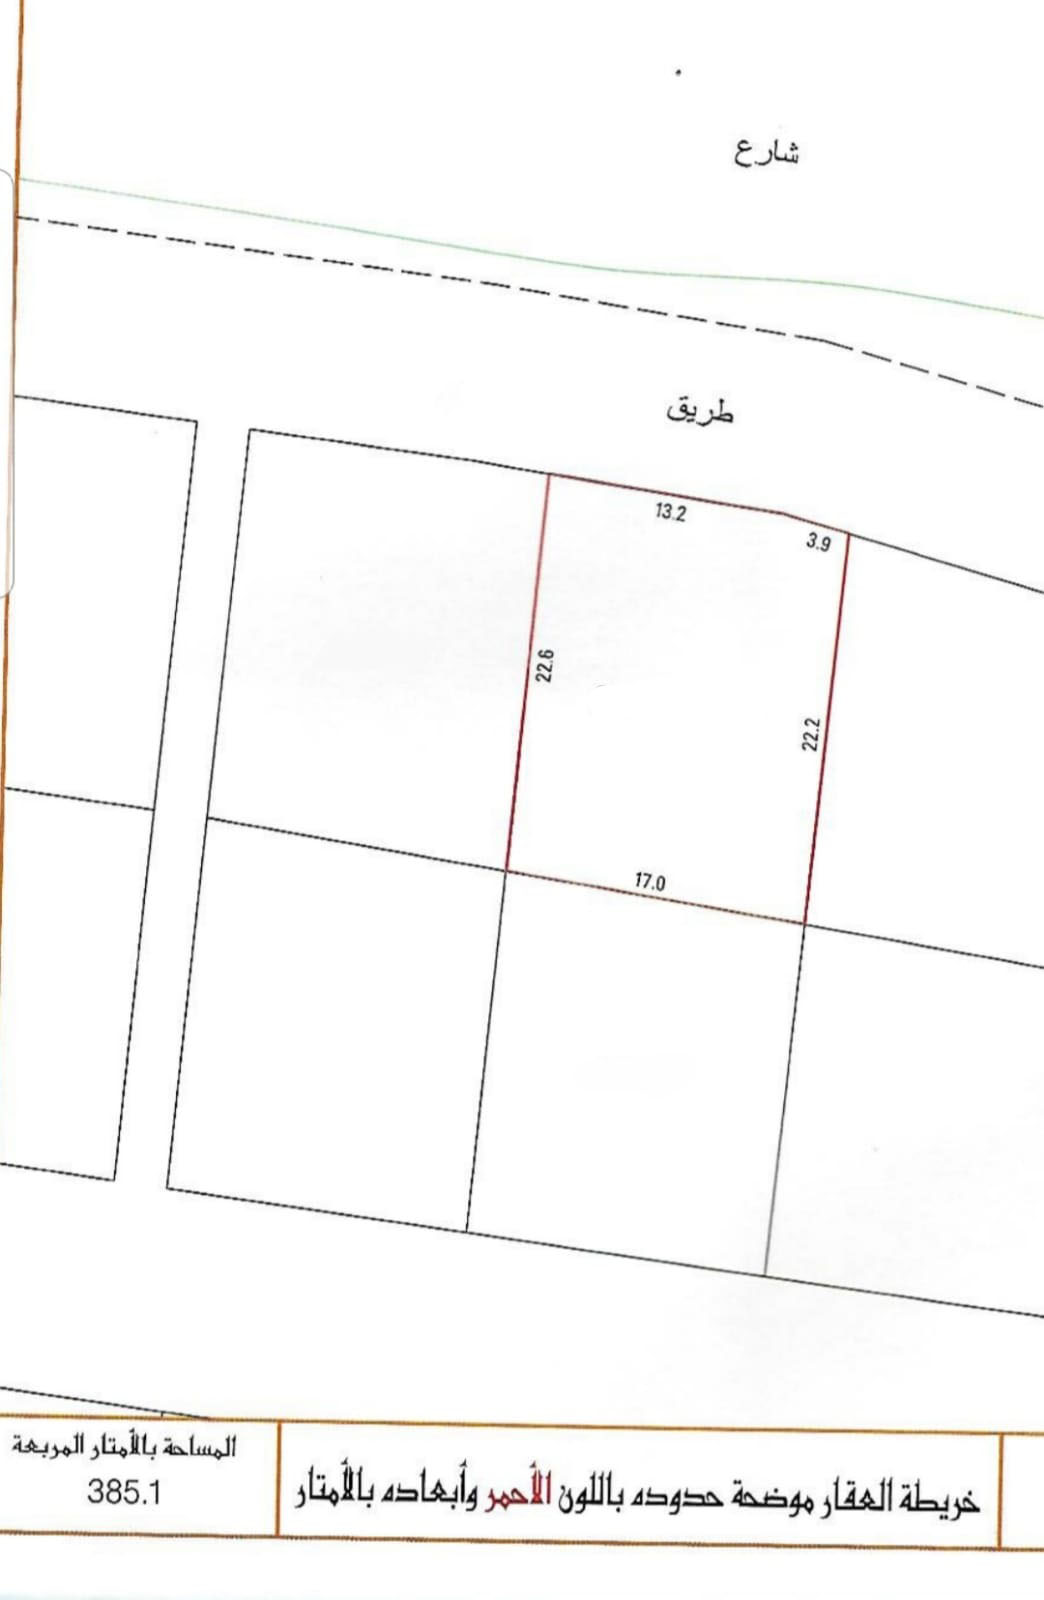 Land for Sale in AlSamahej. Ref: SAM-MN-001